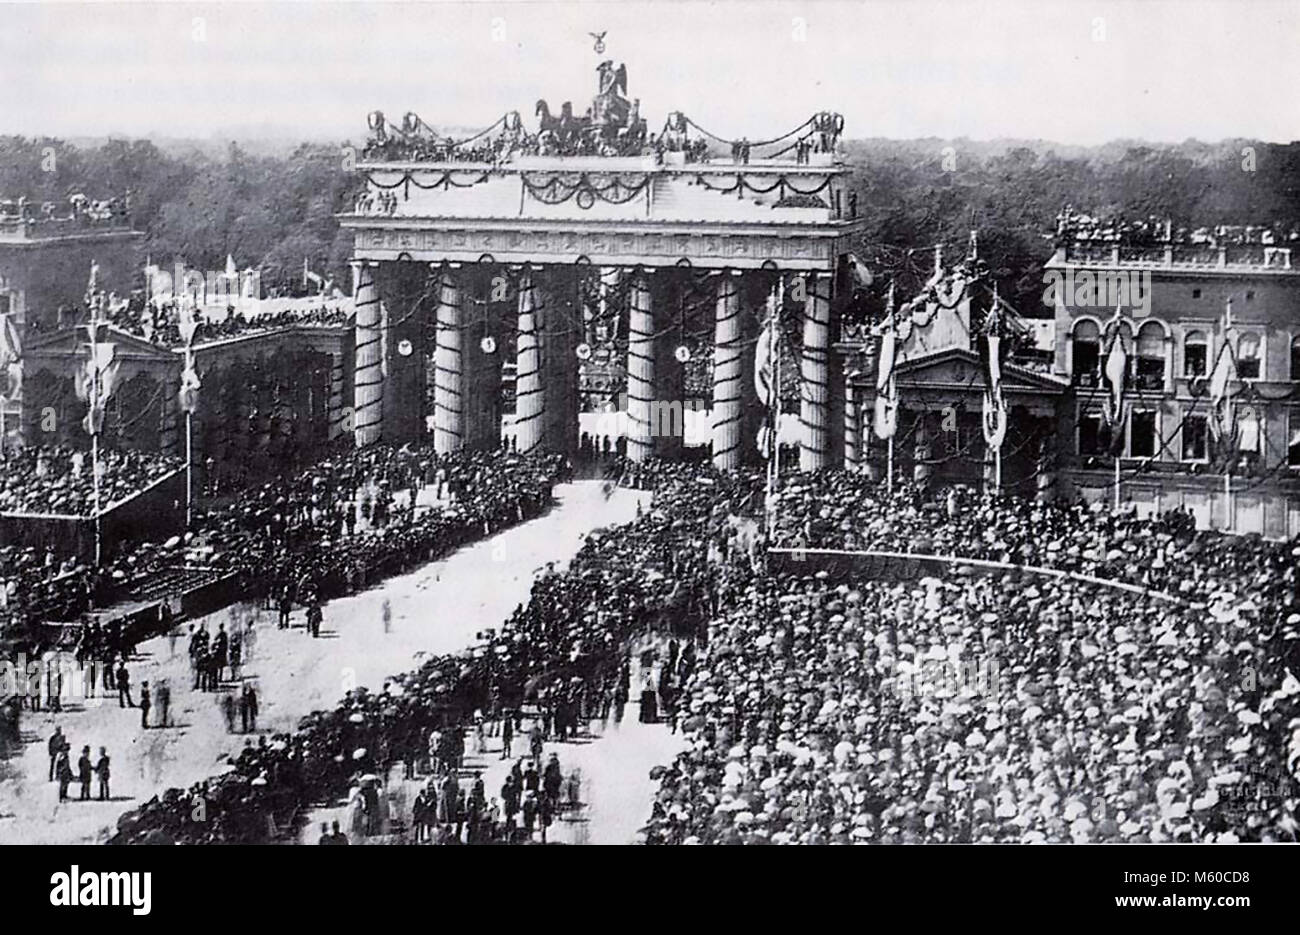 FRANCO-PRUSSIAN WAR 1870. Victory parade at the Brandenburg Gate on 16 June 1871 - Stock Image